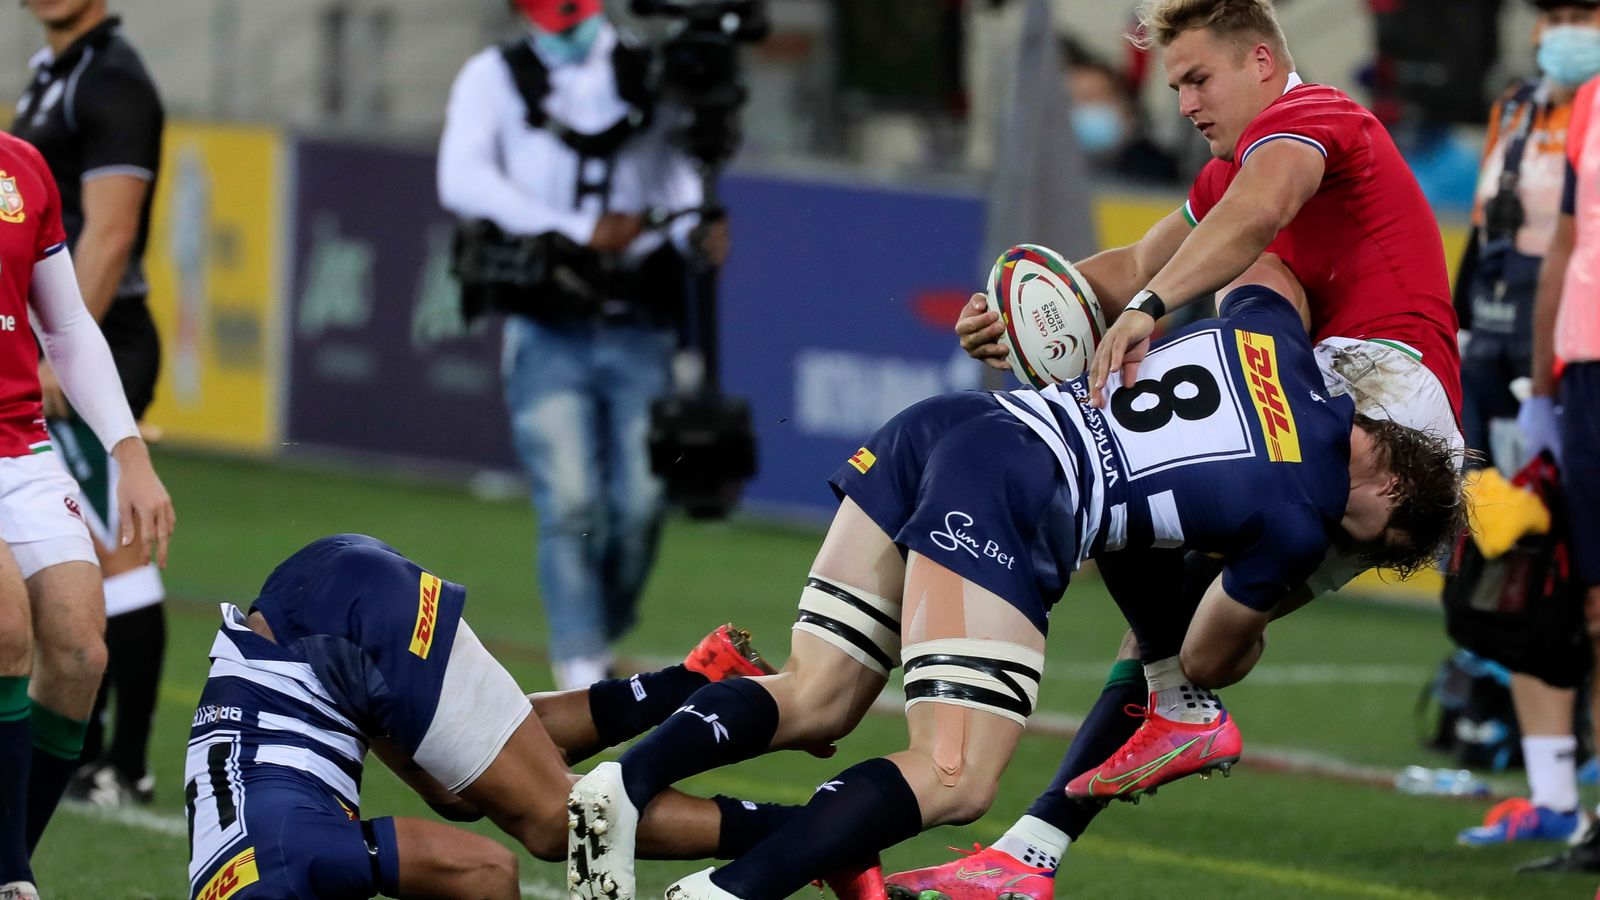 Rugby union governing bodies launch action plan to deal with reduction of head impacts and concussions